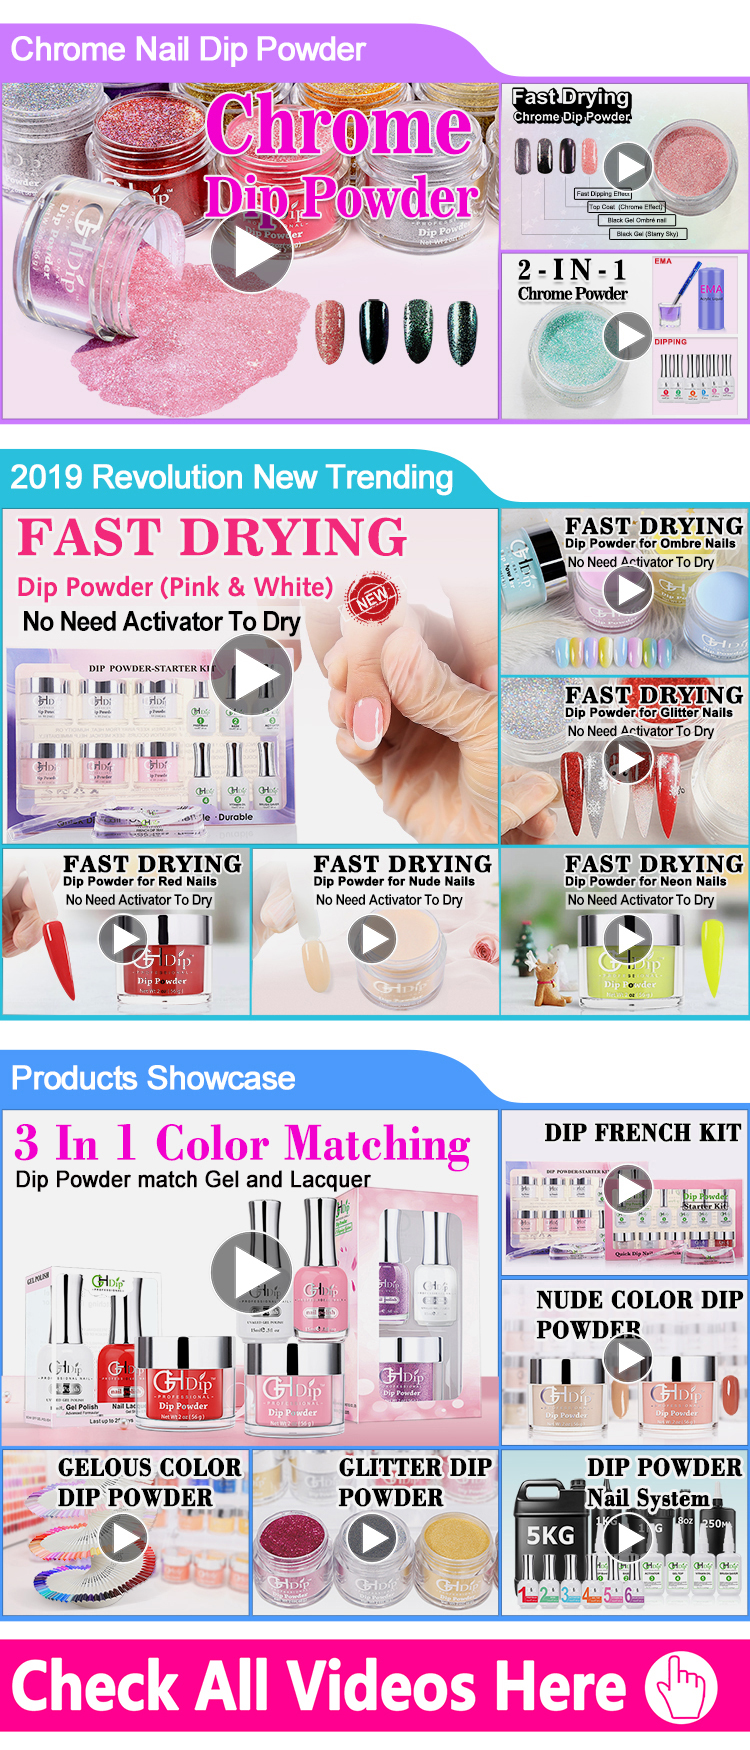 2000 Colors Acrylic Nail Dipping Powder 3 in 1 Perfect color Match Gel Polish and Nail Lacquer